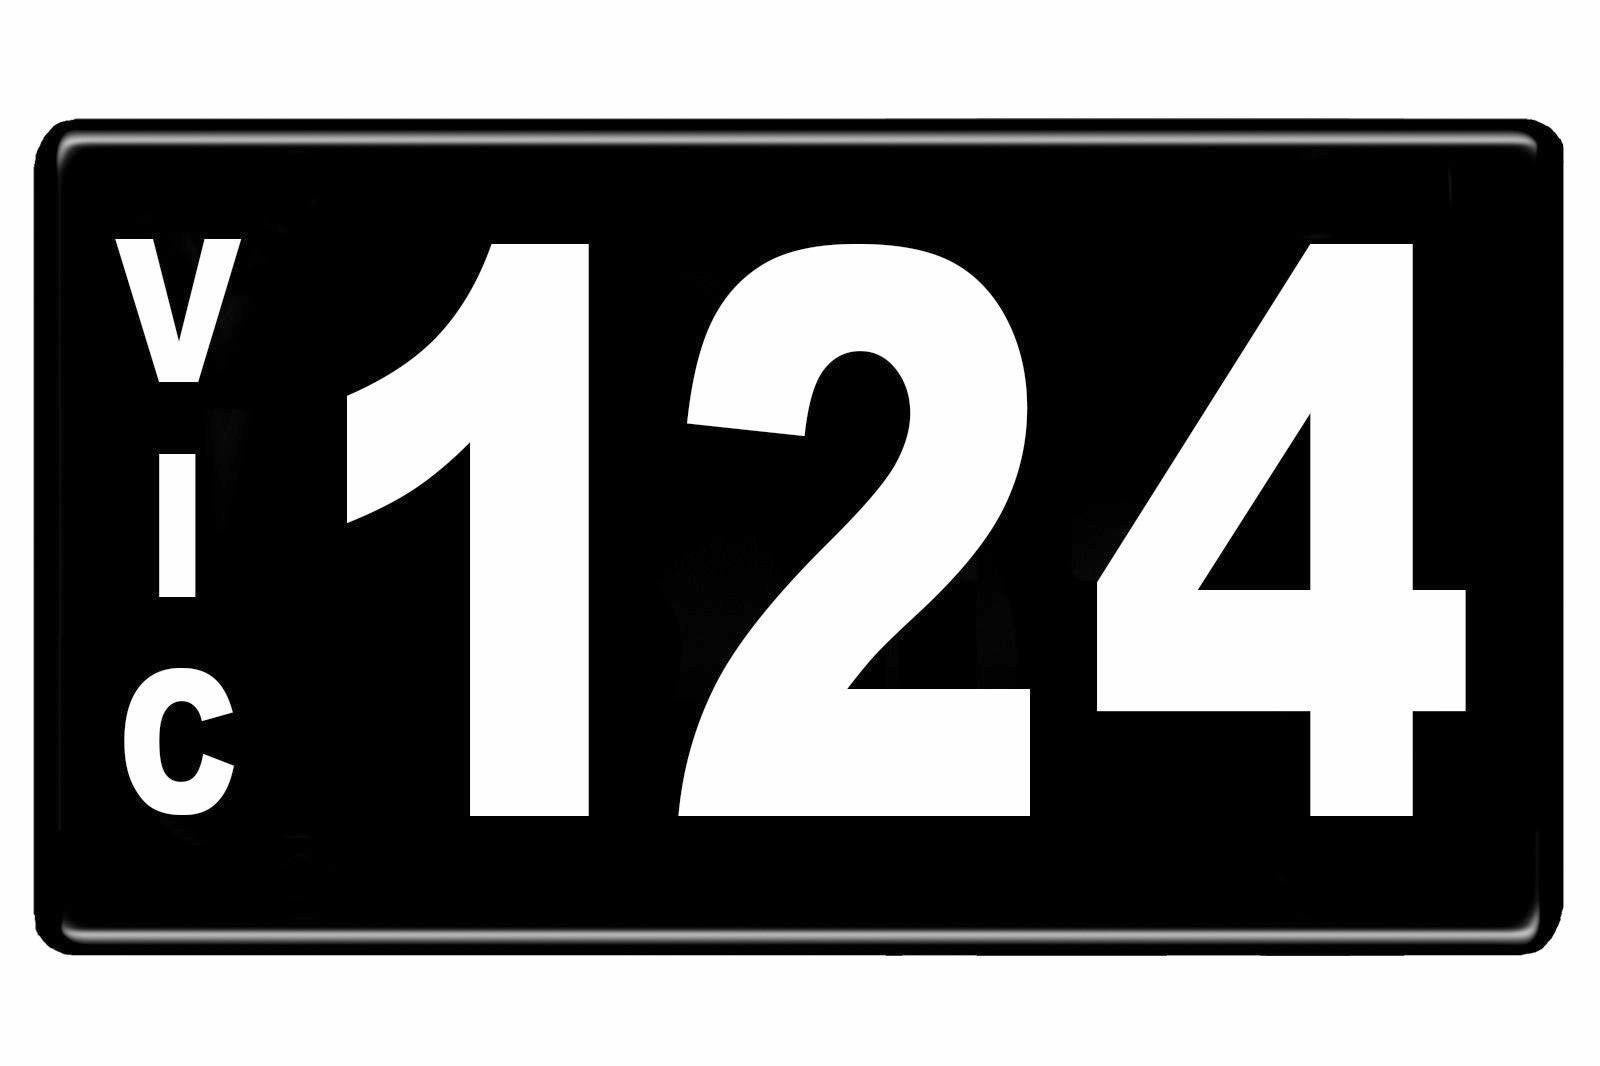 $268,000 was paid for the early Victorian-issued plate '124'.